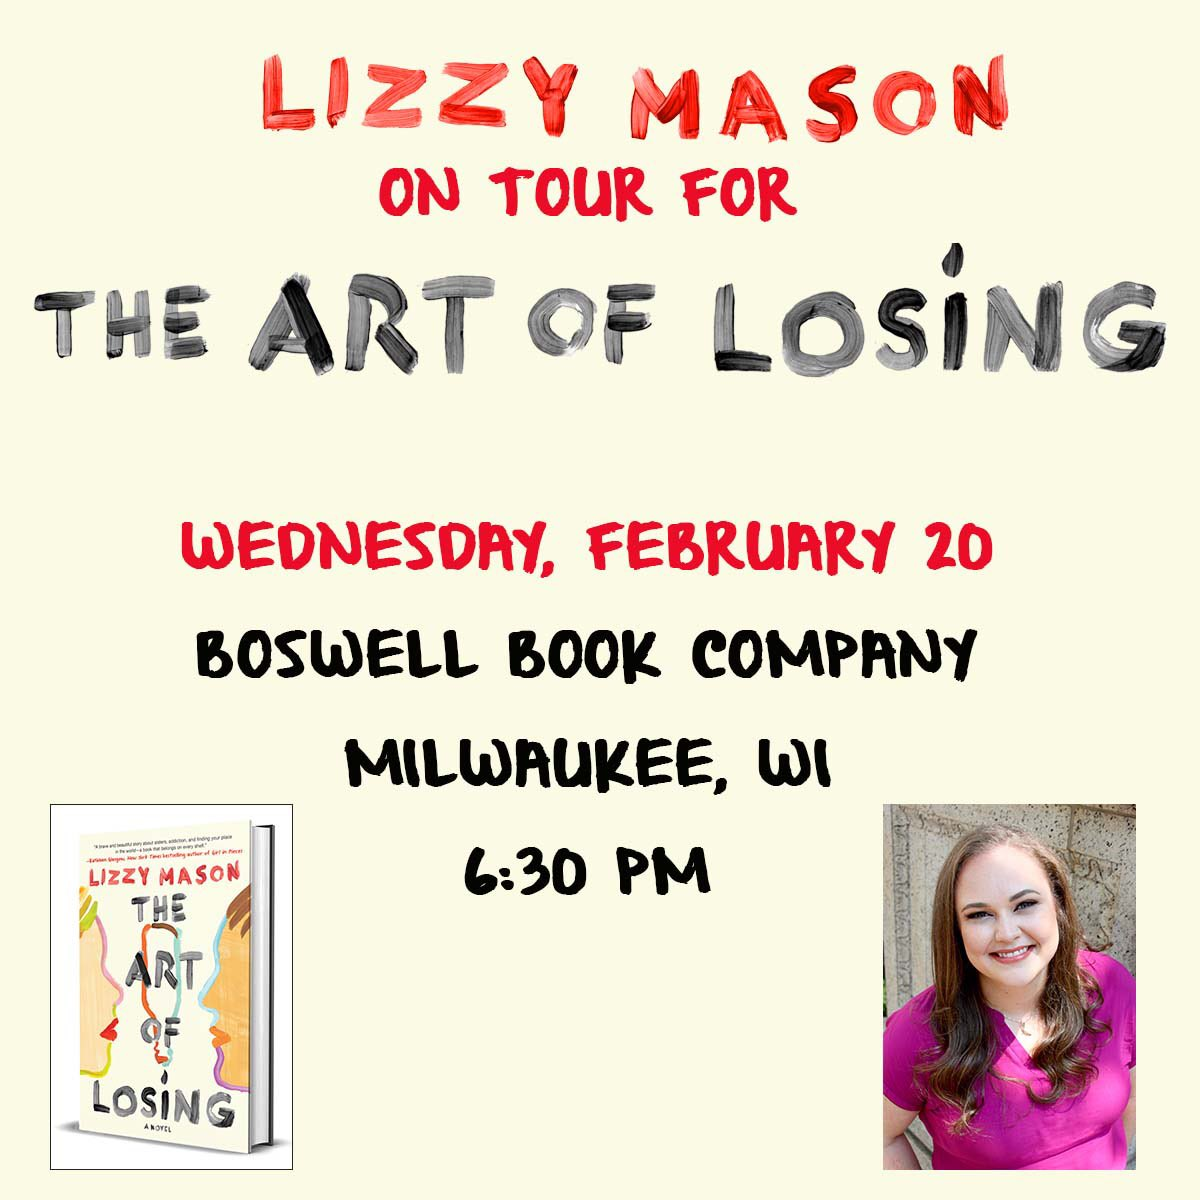 Lizzy Mason On Twitter Tonight I M In Milwaukee At Boswellbooks With One Of My Favorites Phoebedyer